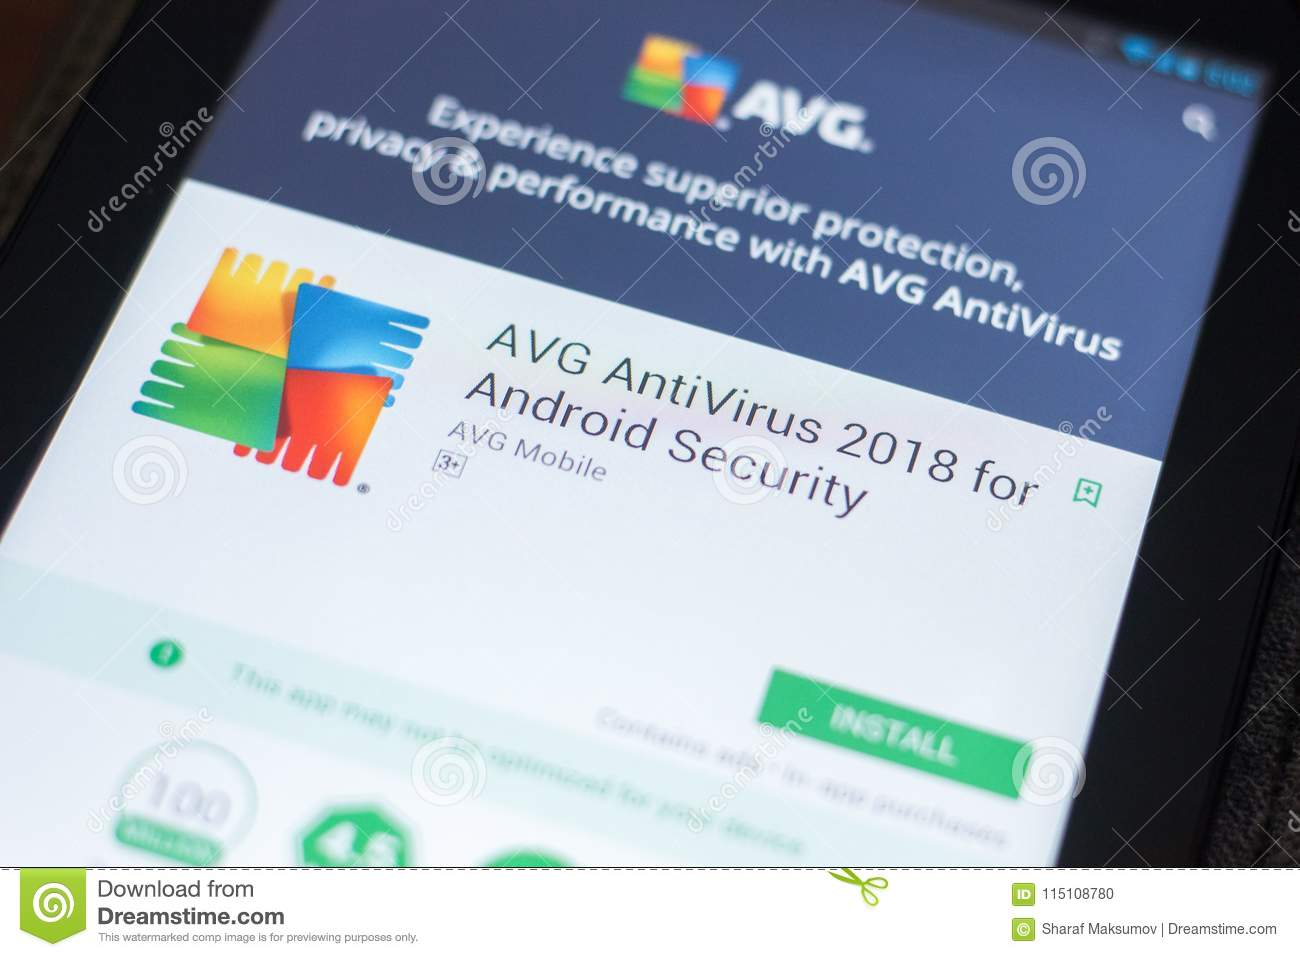 11 best free android antivirus apps to keep your device secured in.